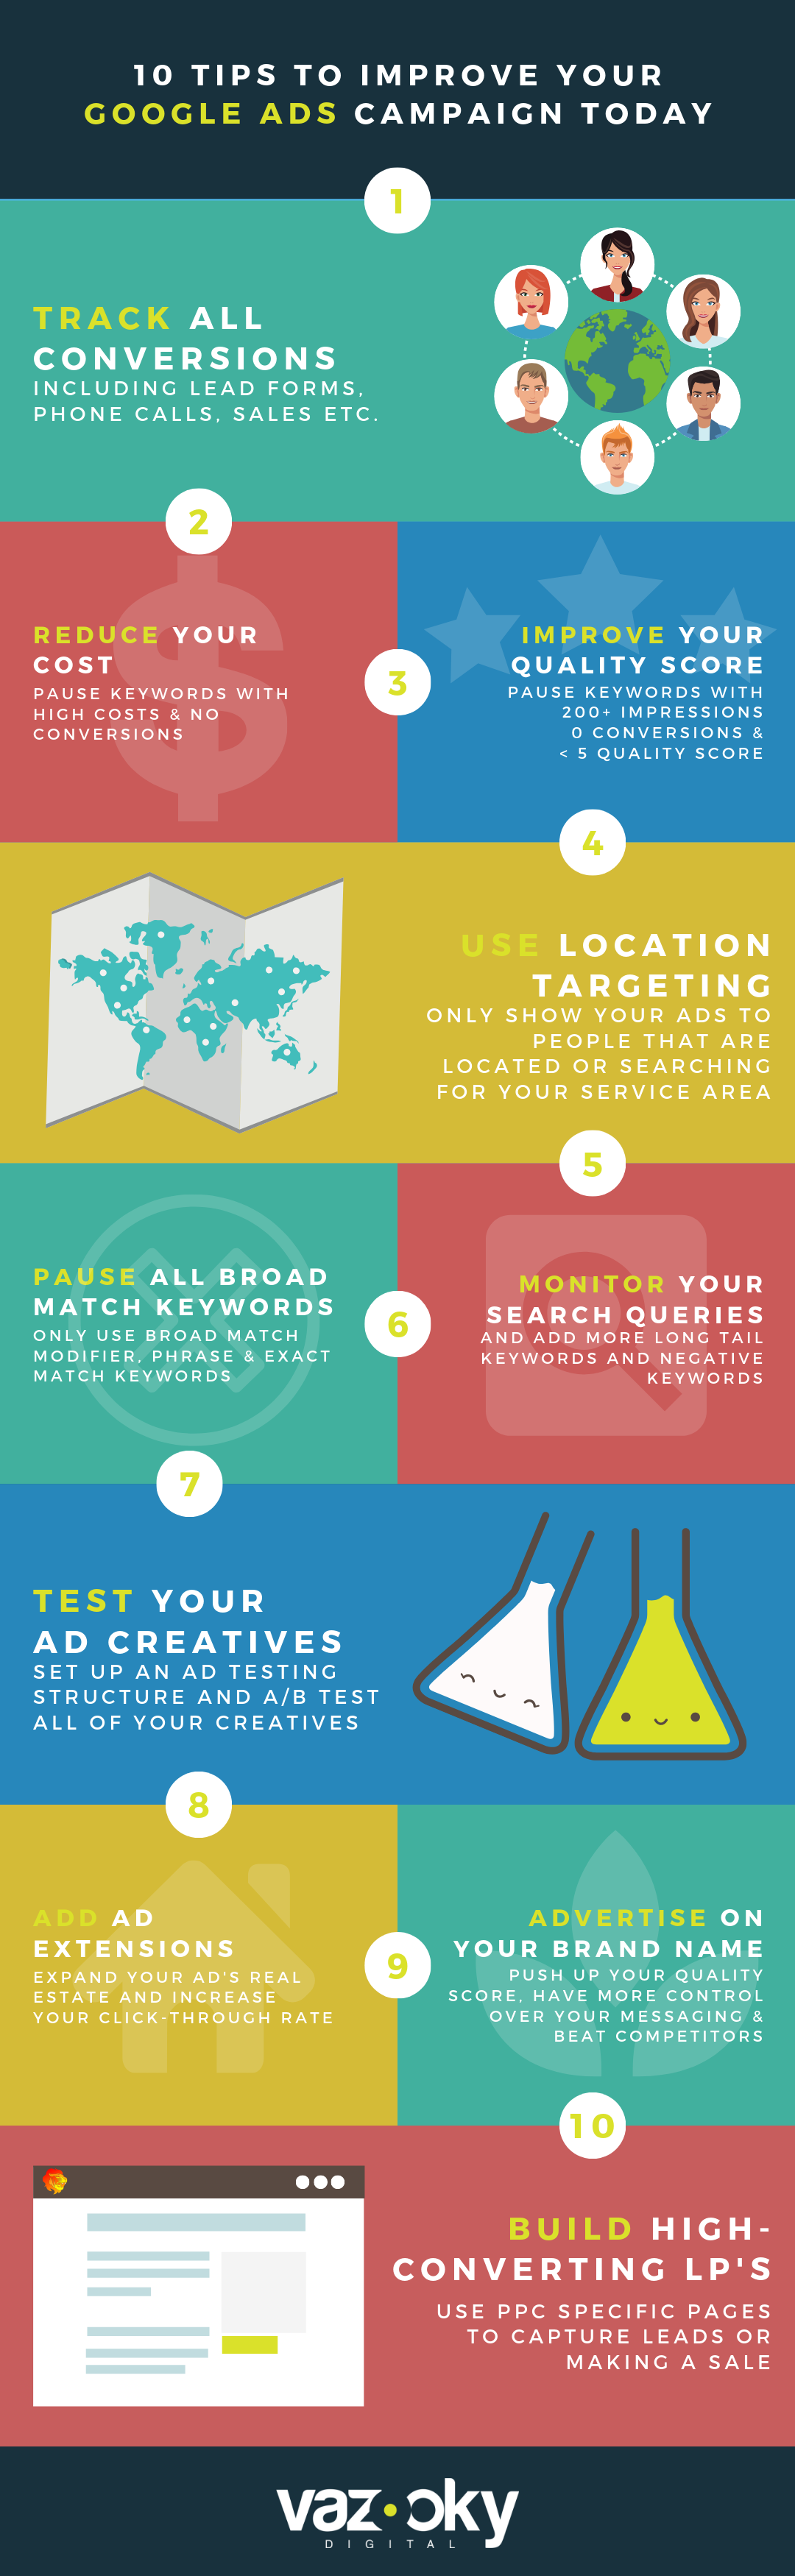 Infographic with Google Ads tips that can be implemented today.